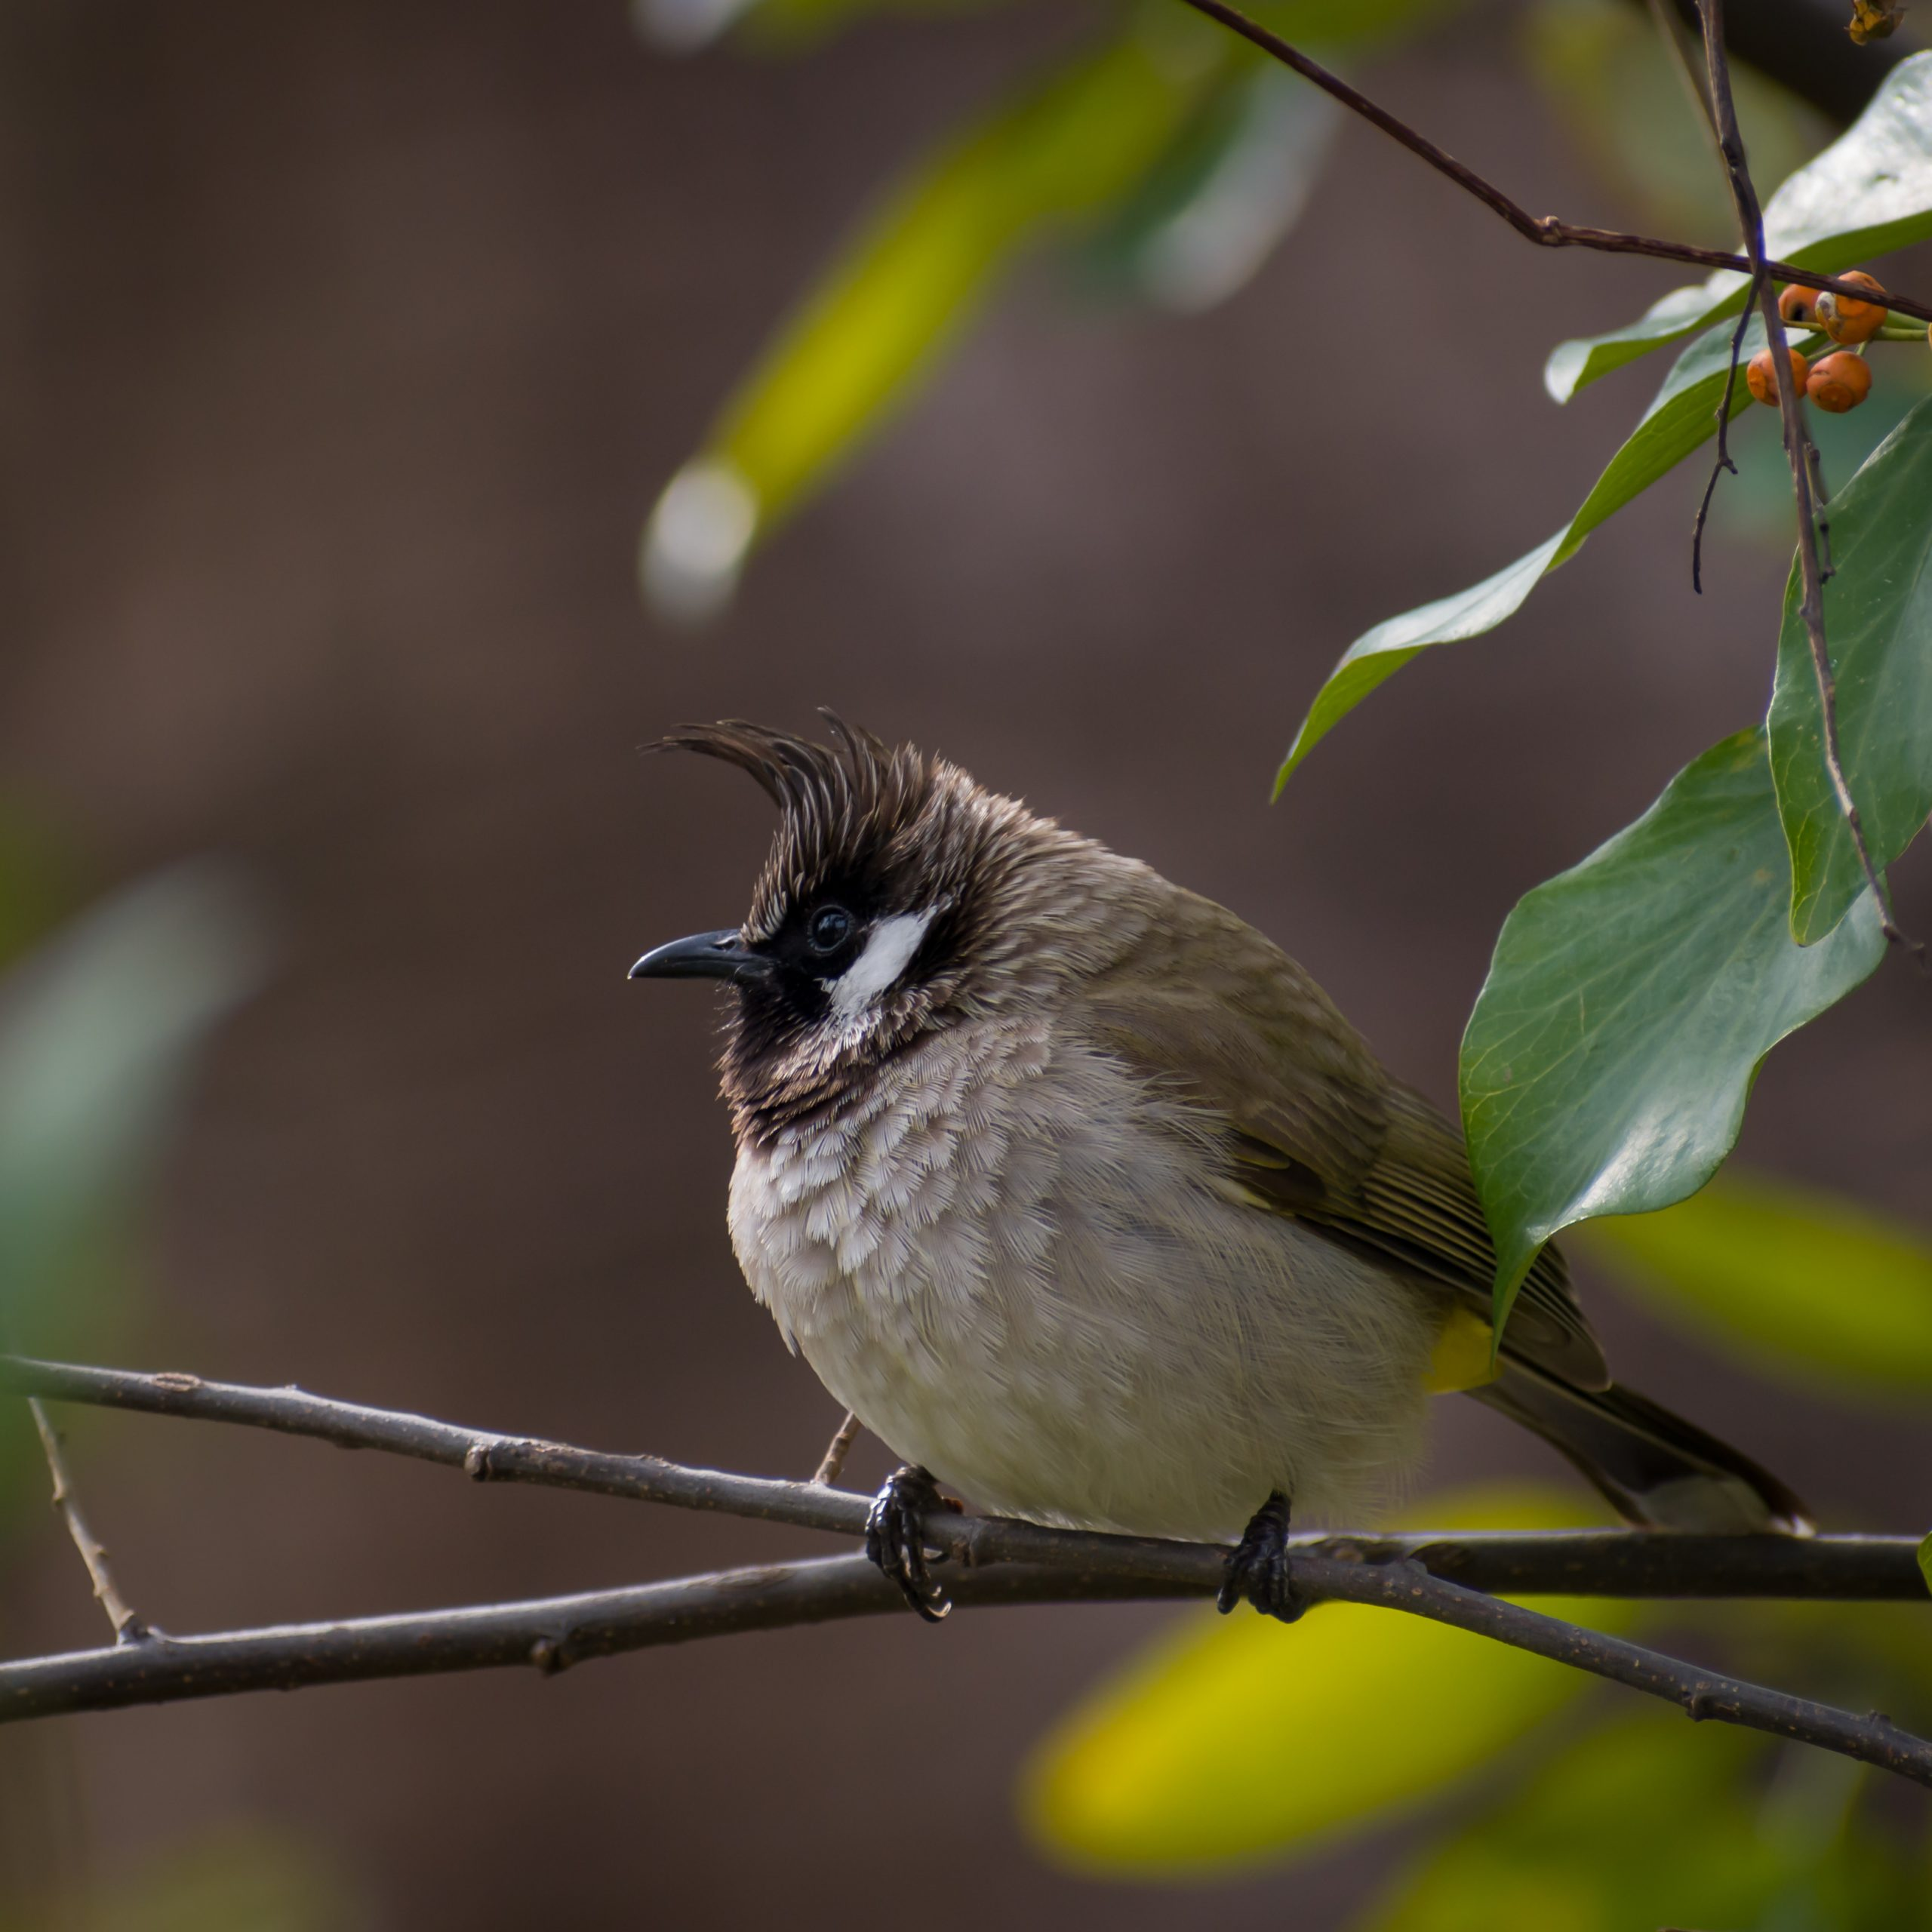 Bulbul bird sitting on branch